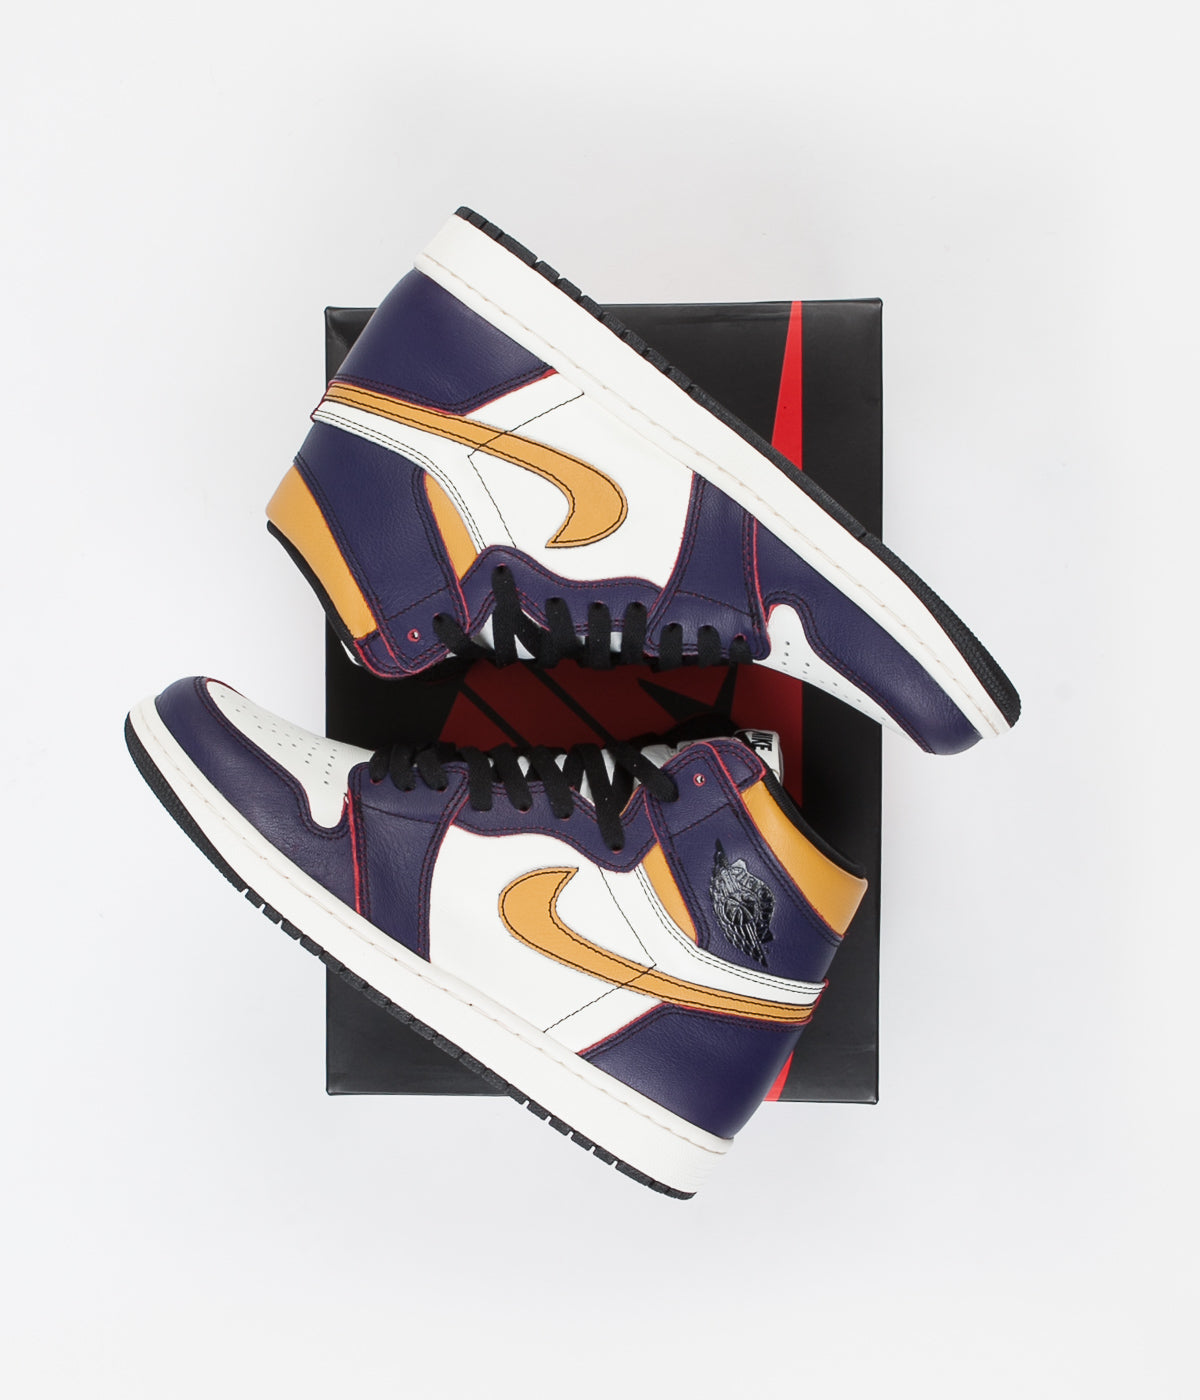 Nike SB Air Jordan 1 OG Defiant Shoes - Court Purple / Black - Sail - University Gold